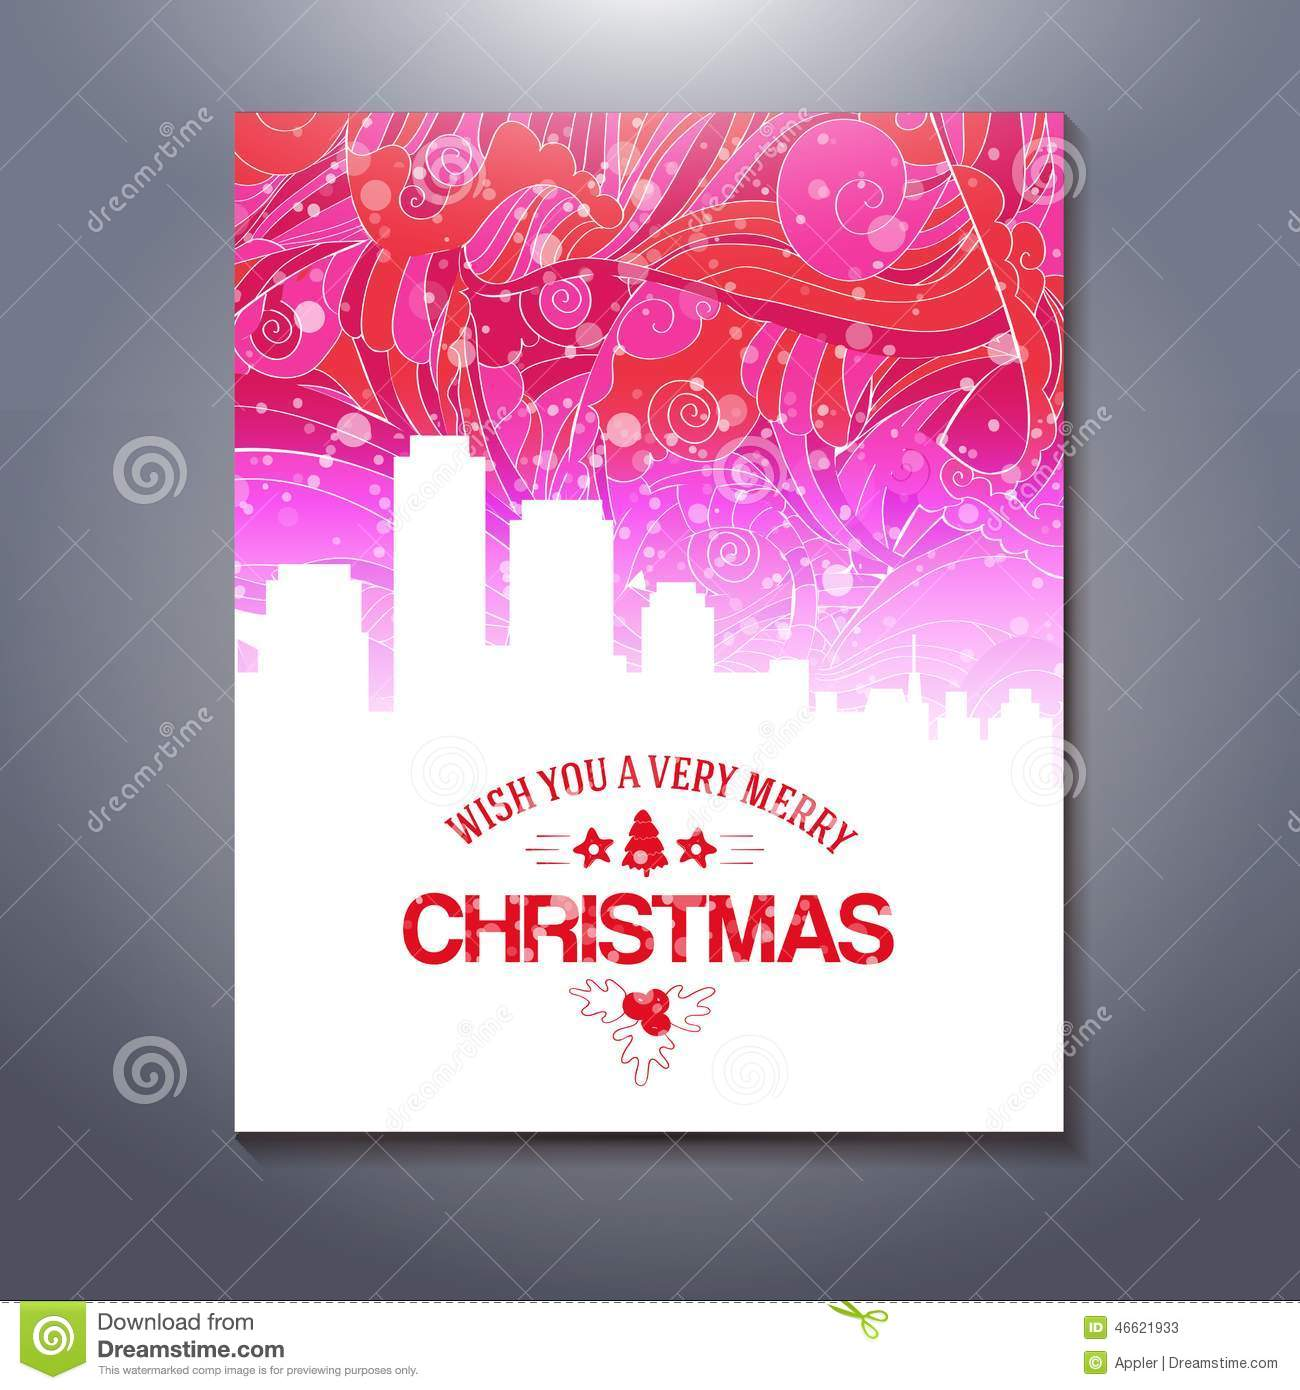 Abstarct urban scene xmas greetings template stock vector abstract city illustration with merry christmas text greetings silhouette building at colorful drawing background lighting and holidays illustration m4hsunfo